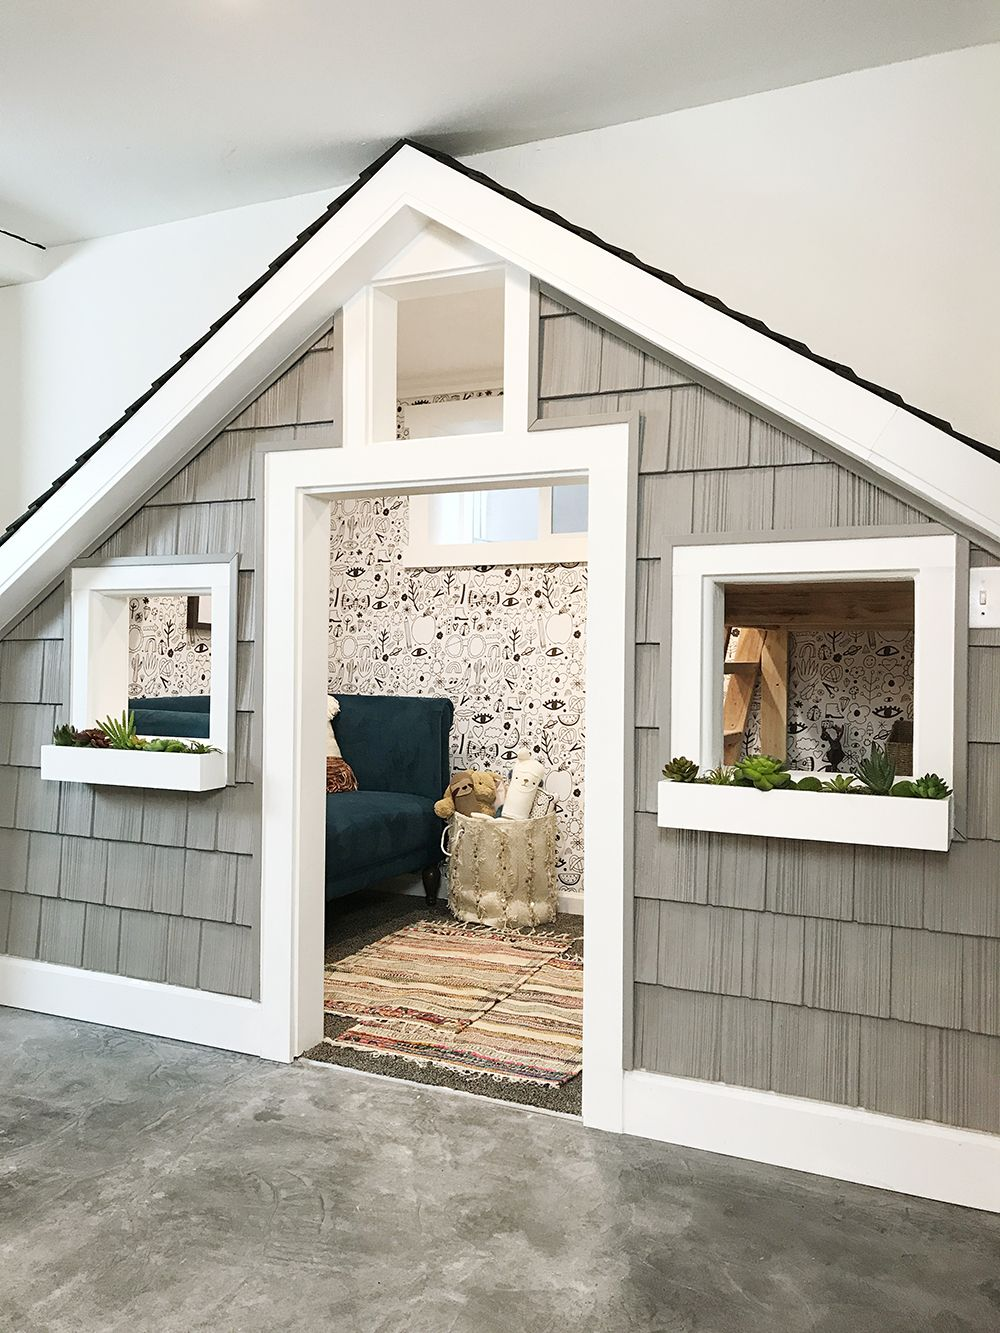 Photo of Before And After: The Sweetest Small Indoor Playhouse!